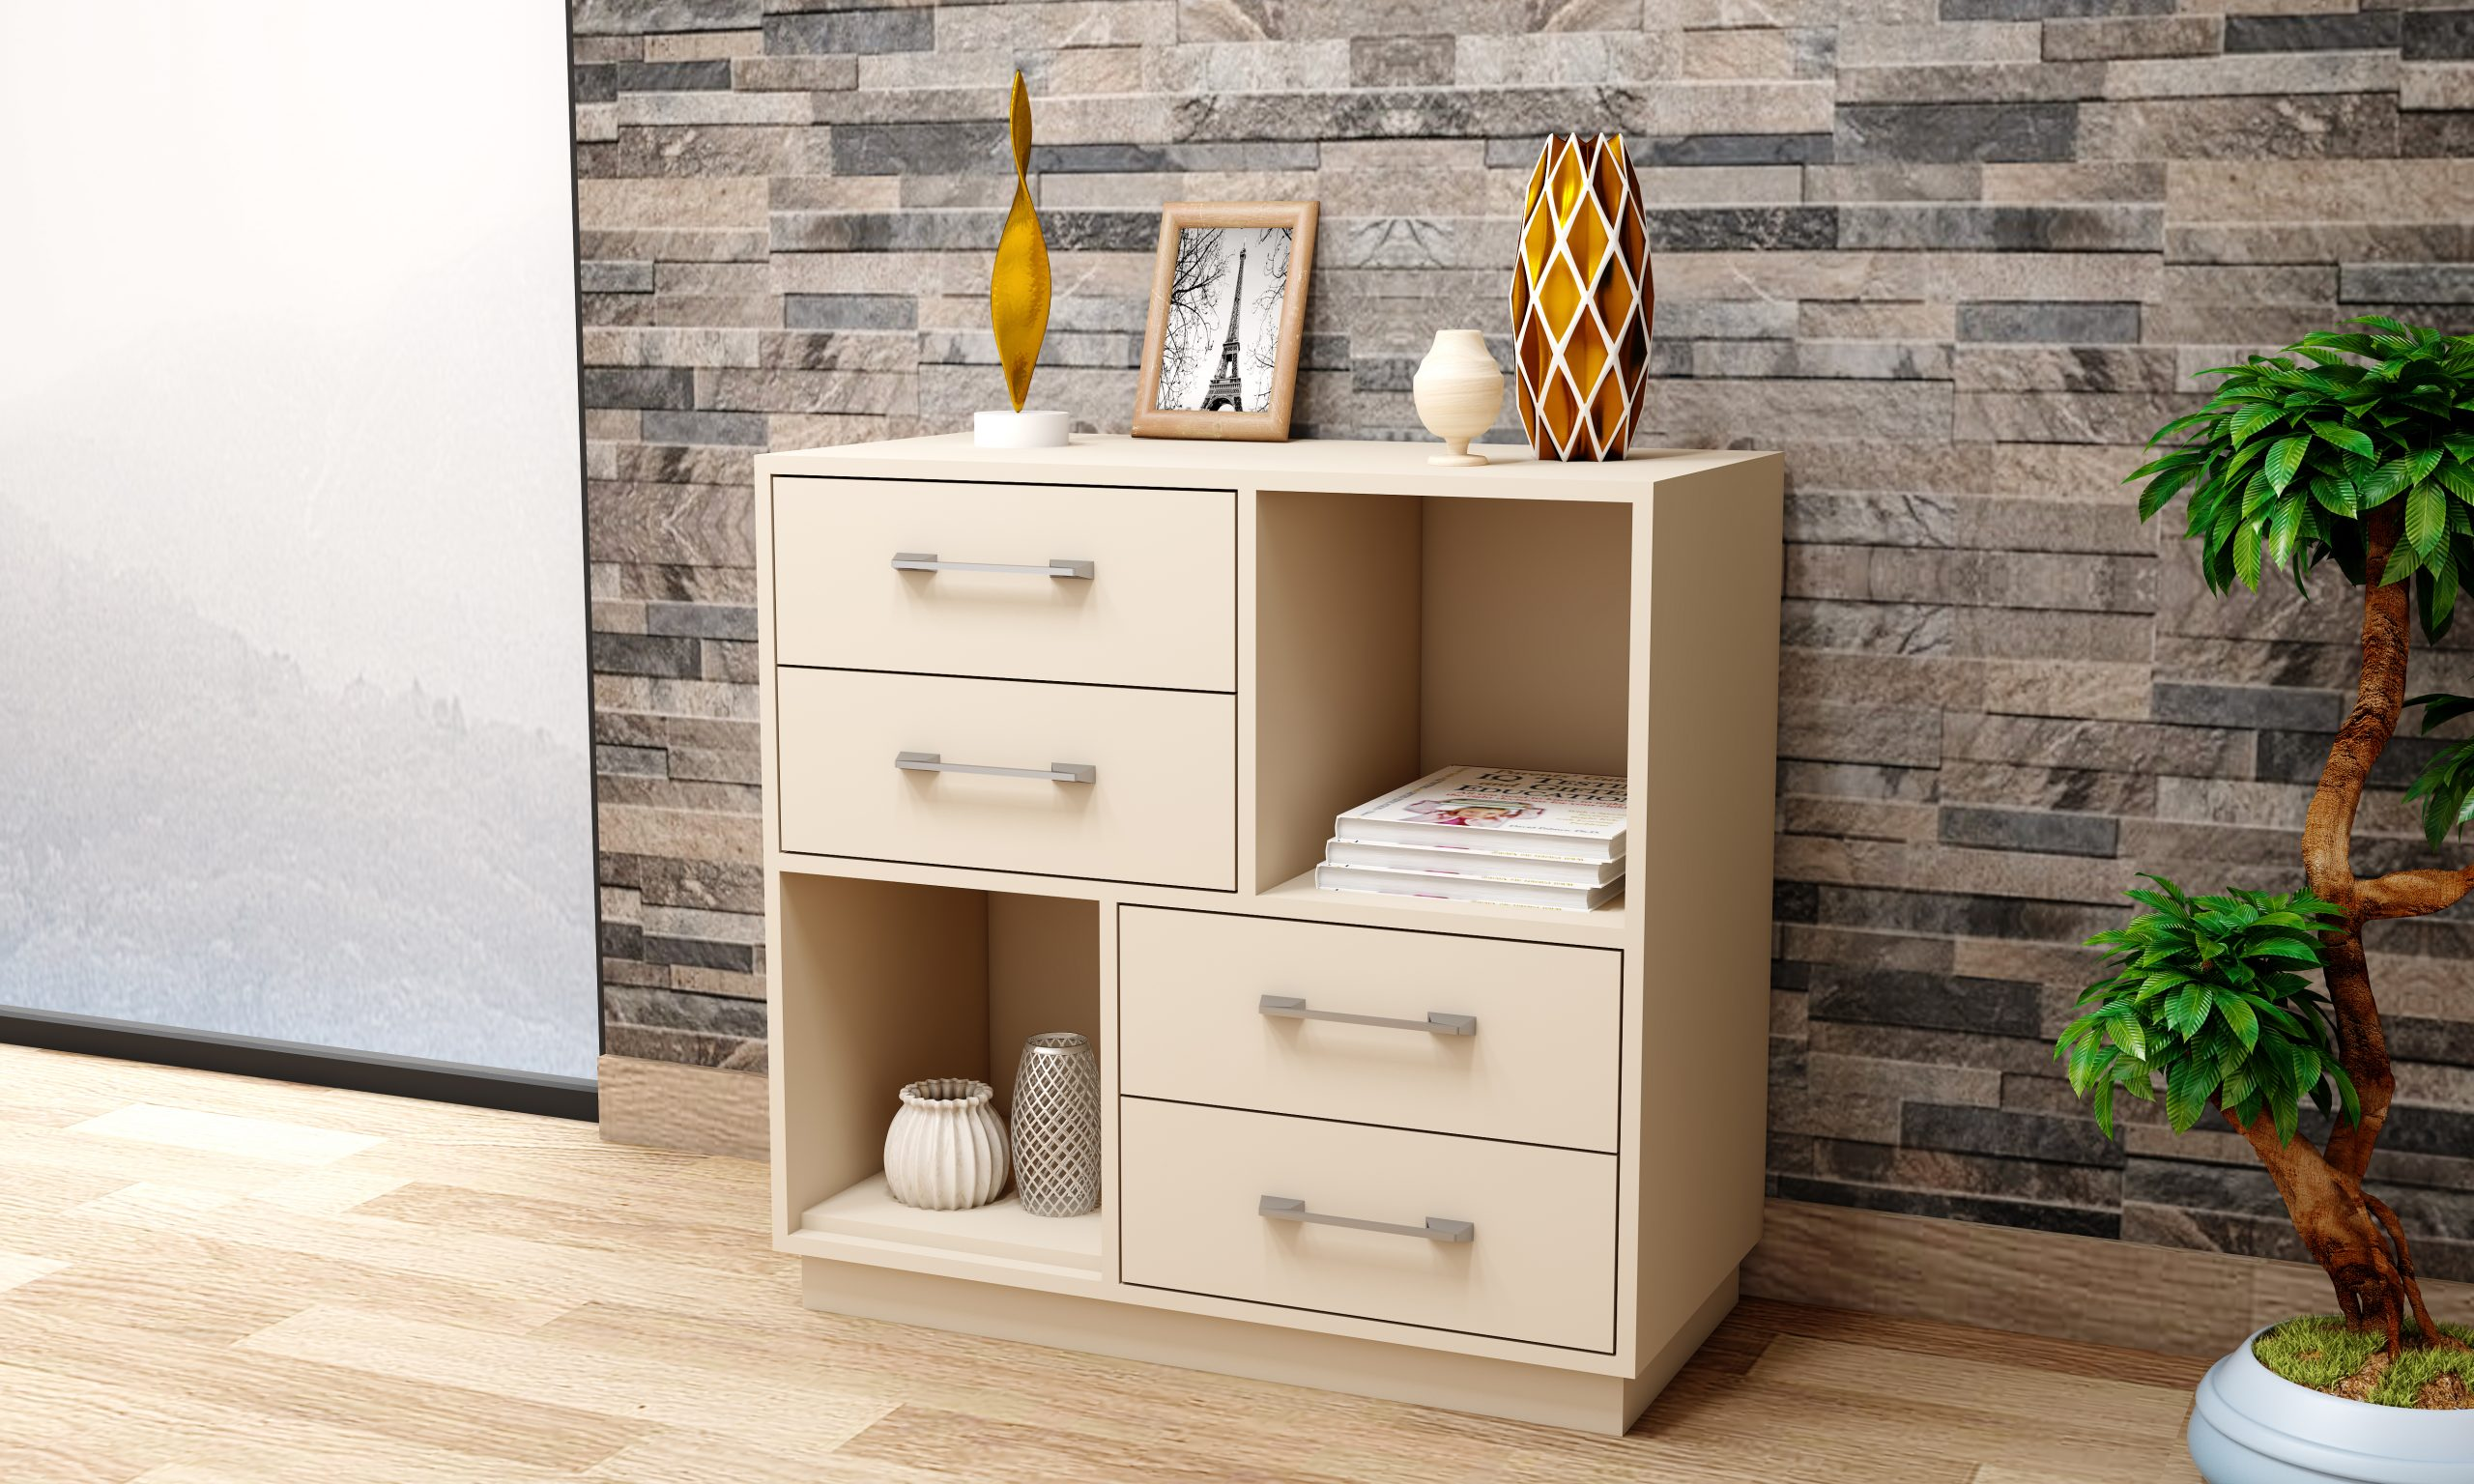 Free standing chest drawers and storage cabinets.